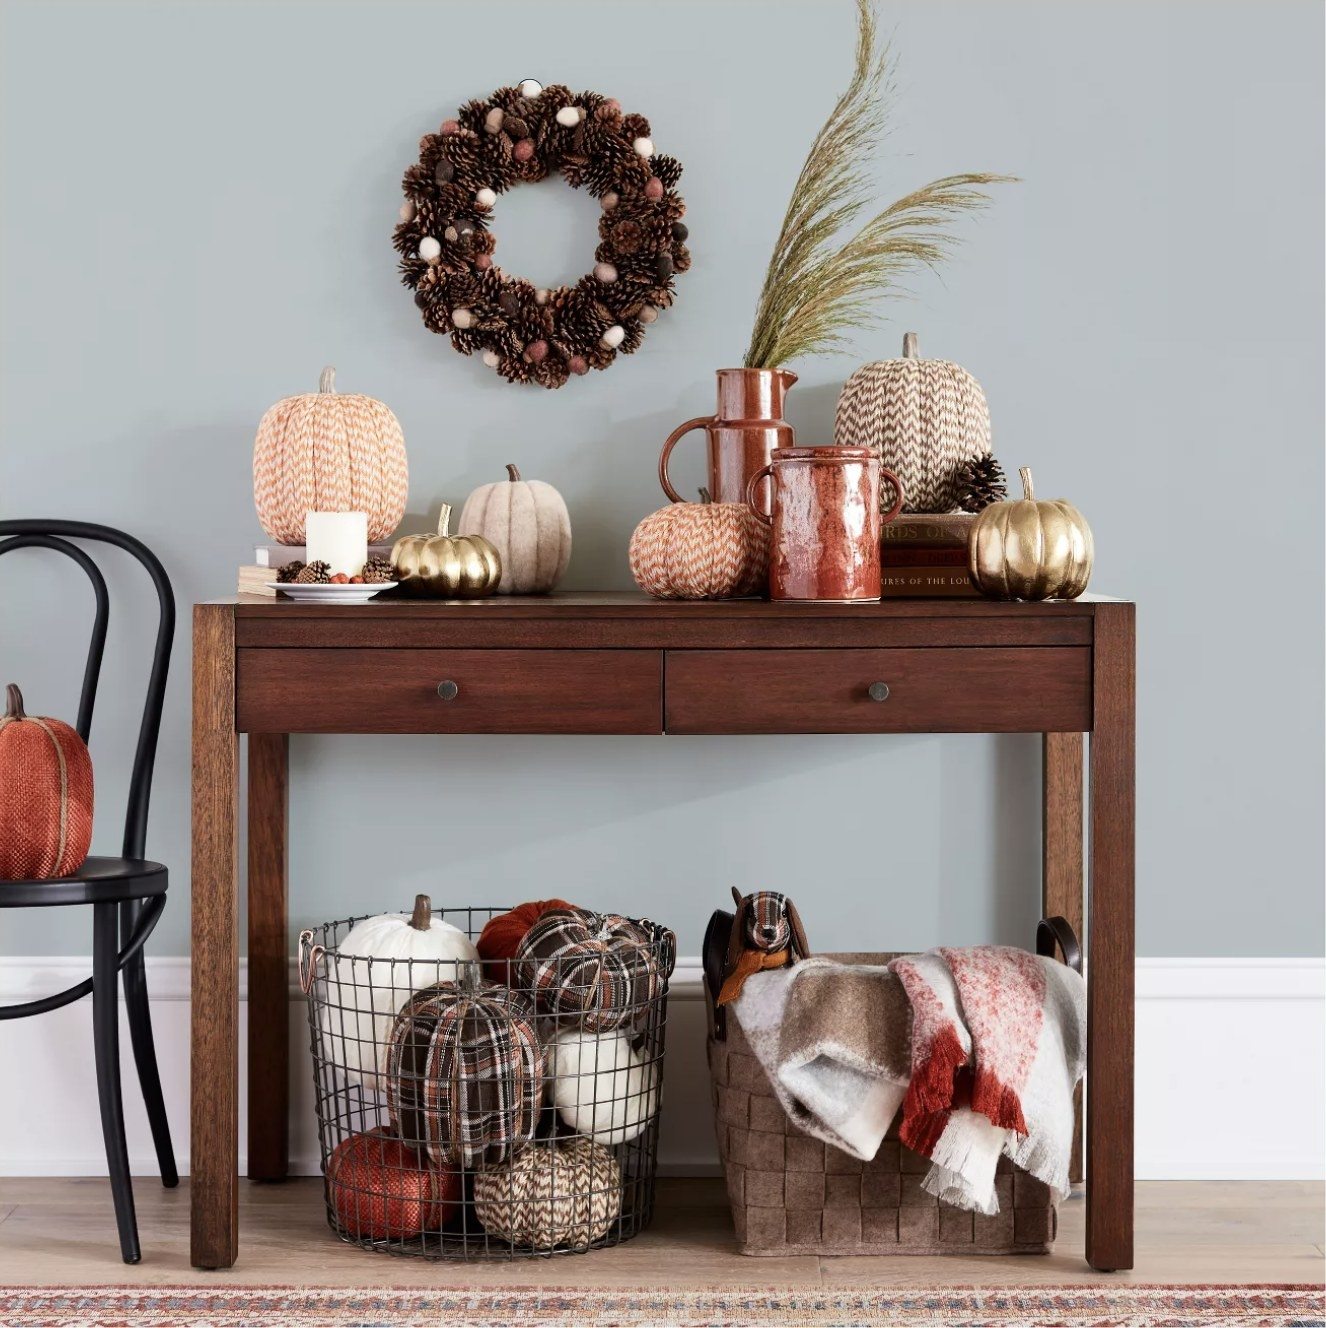 The basket under a console table